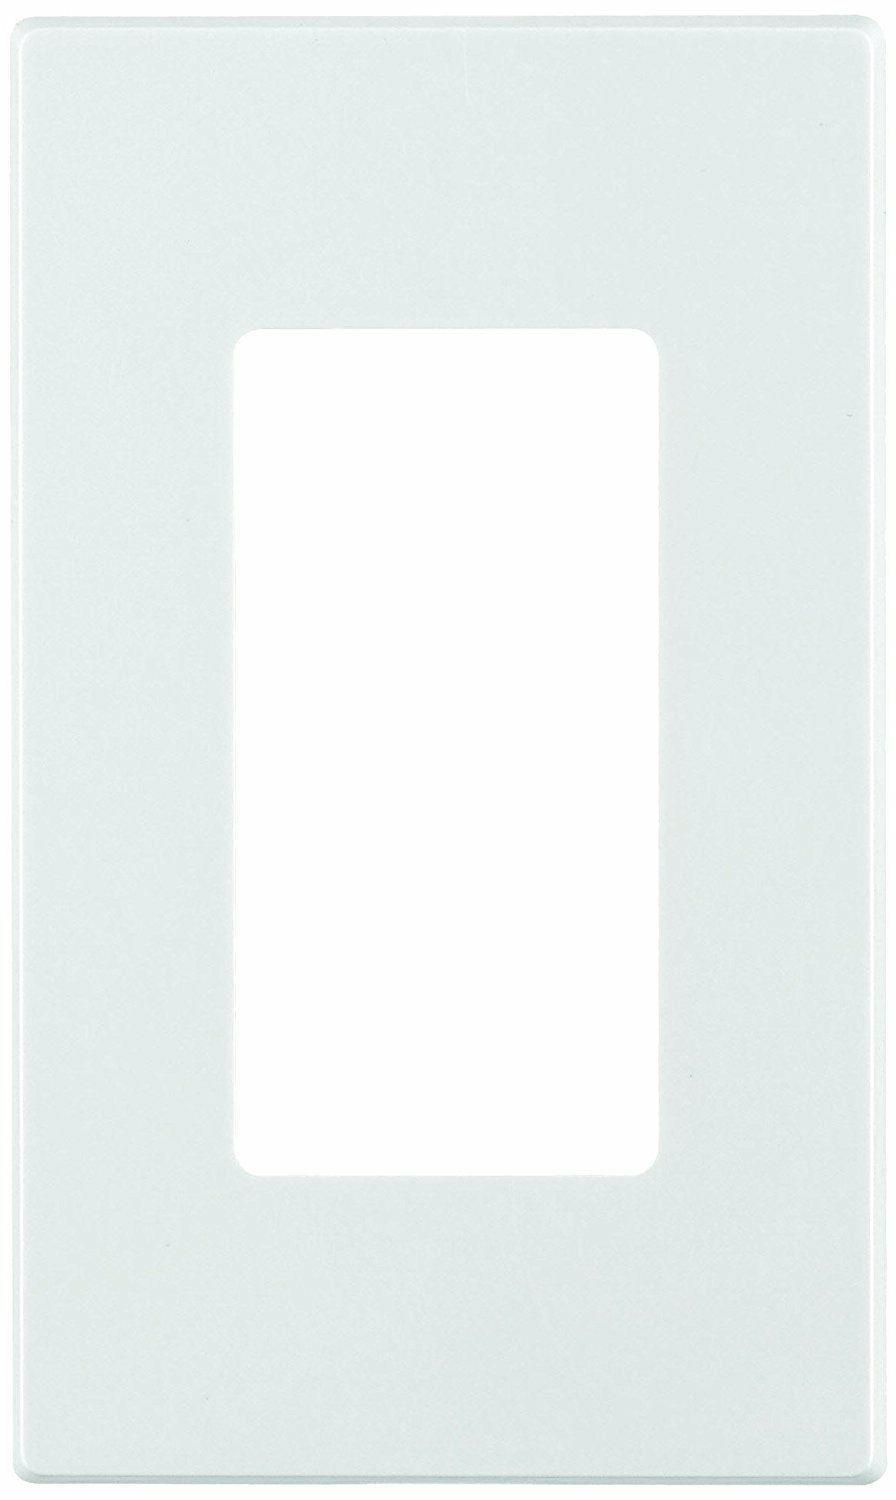 Screwless Wall / Switch Plate Outlet Cover 1-5 Gang | White